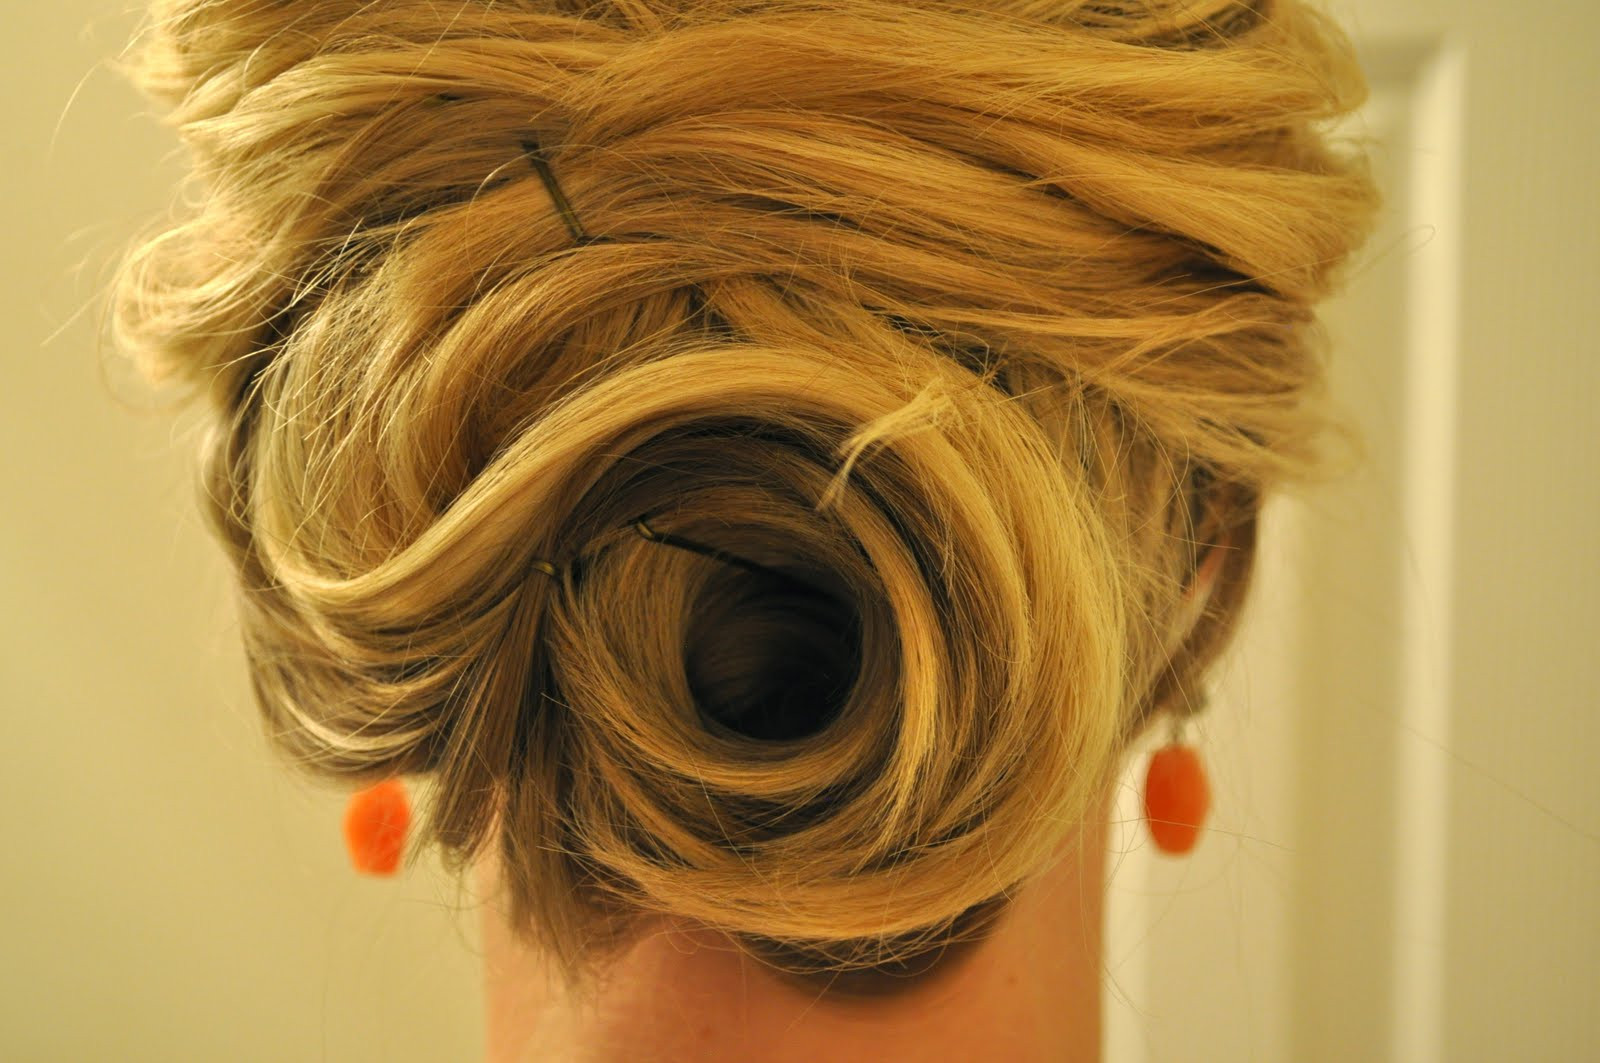 Best ideas about Easy Up Hairstyles . Save or Pin Half Up to Full Updo – The Small Things Blog Now.